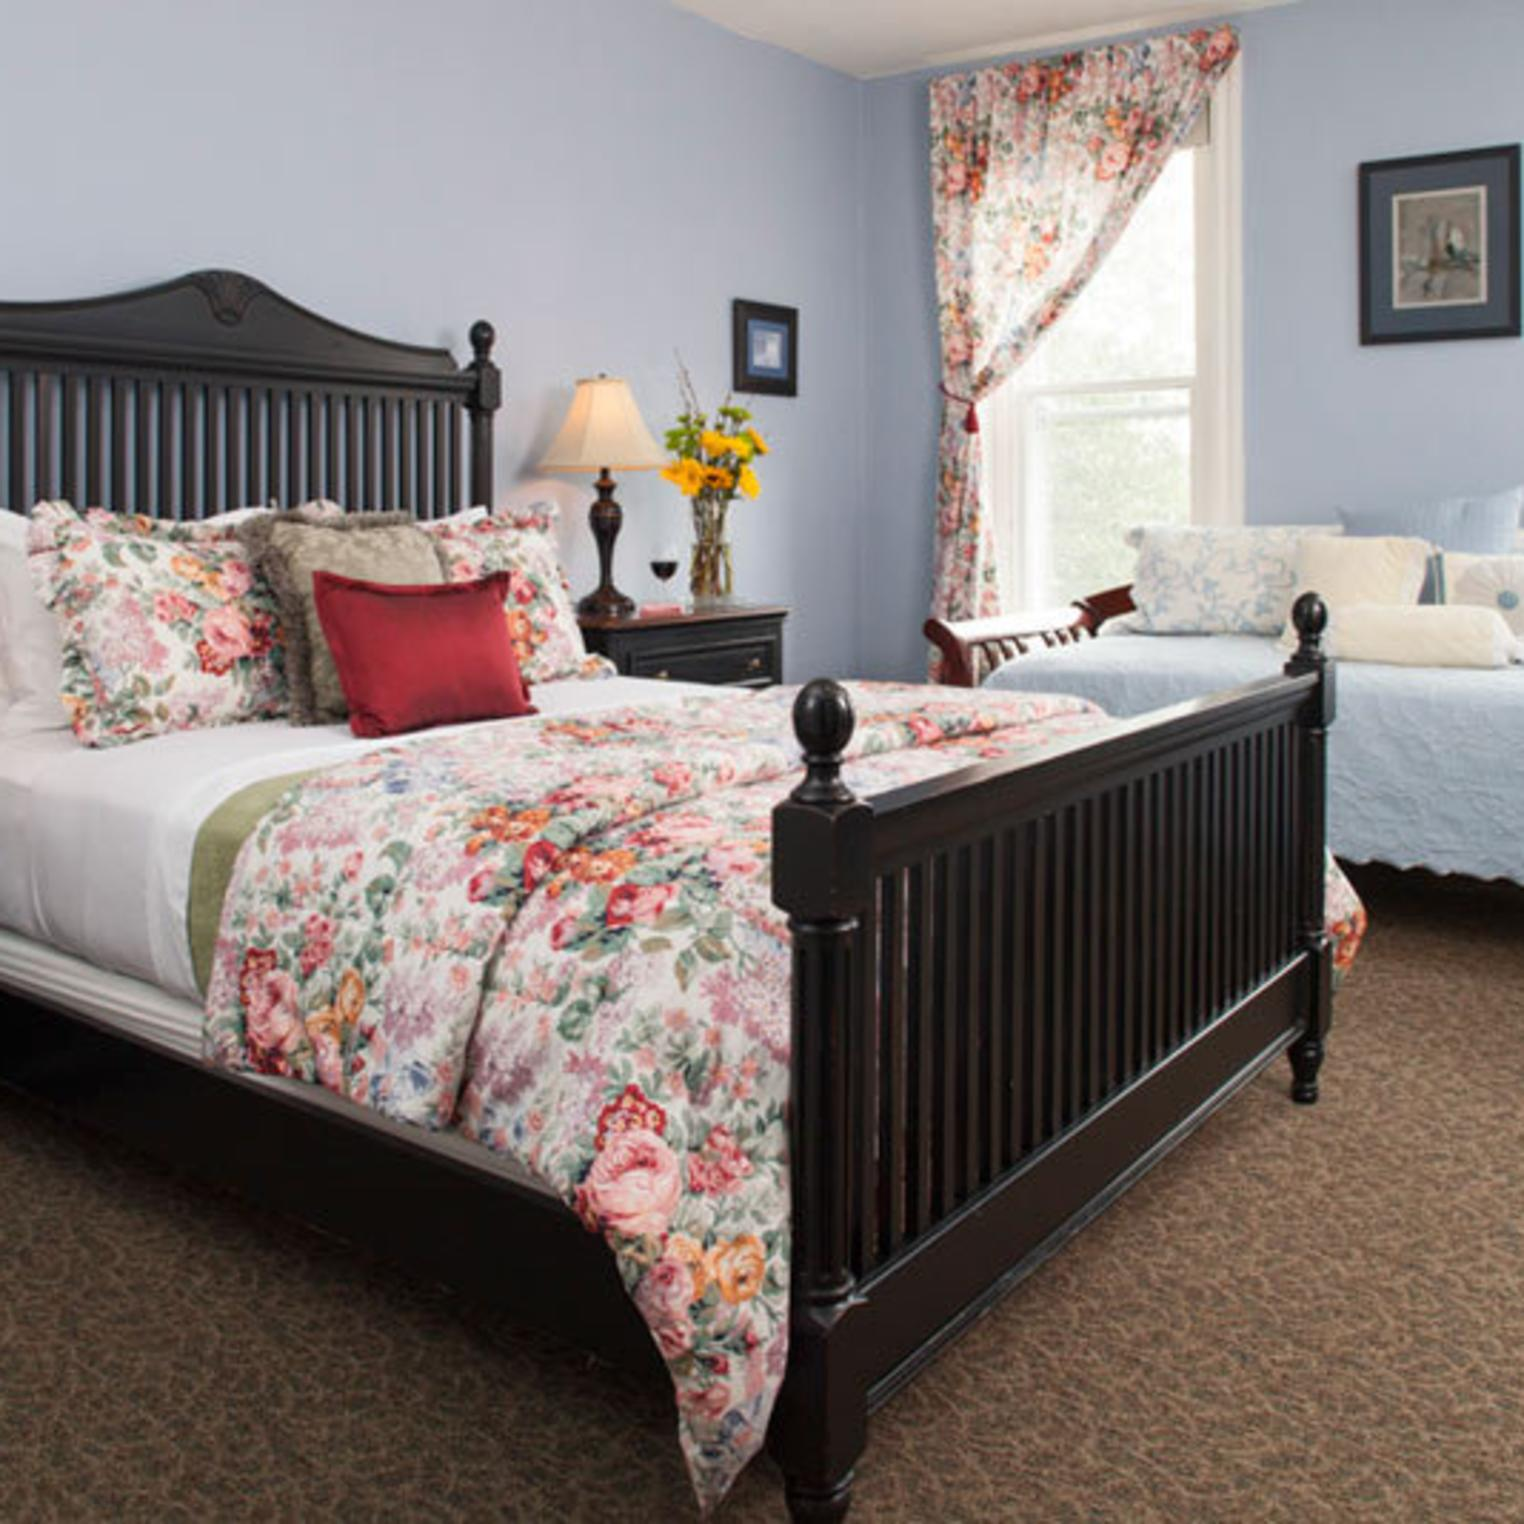 Queen-sized Bed in the Bailey Room